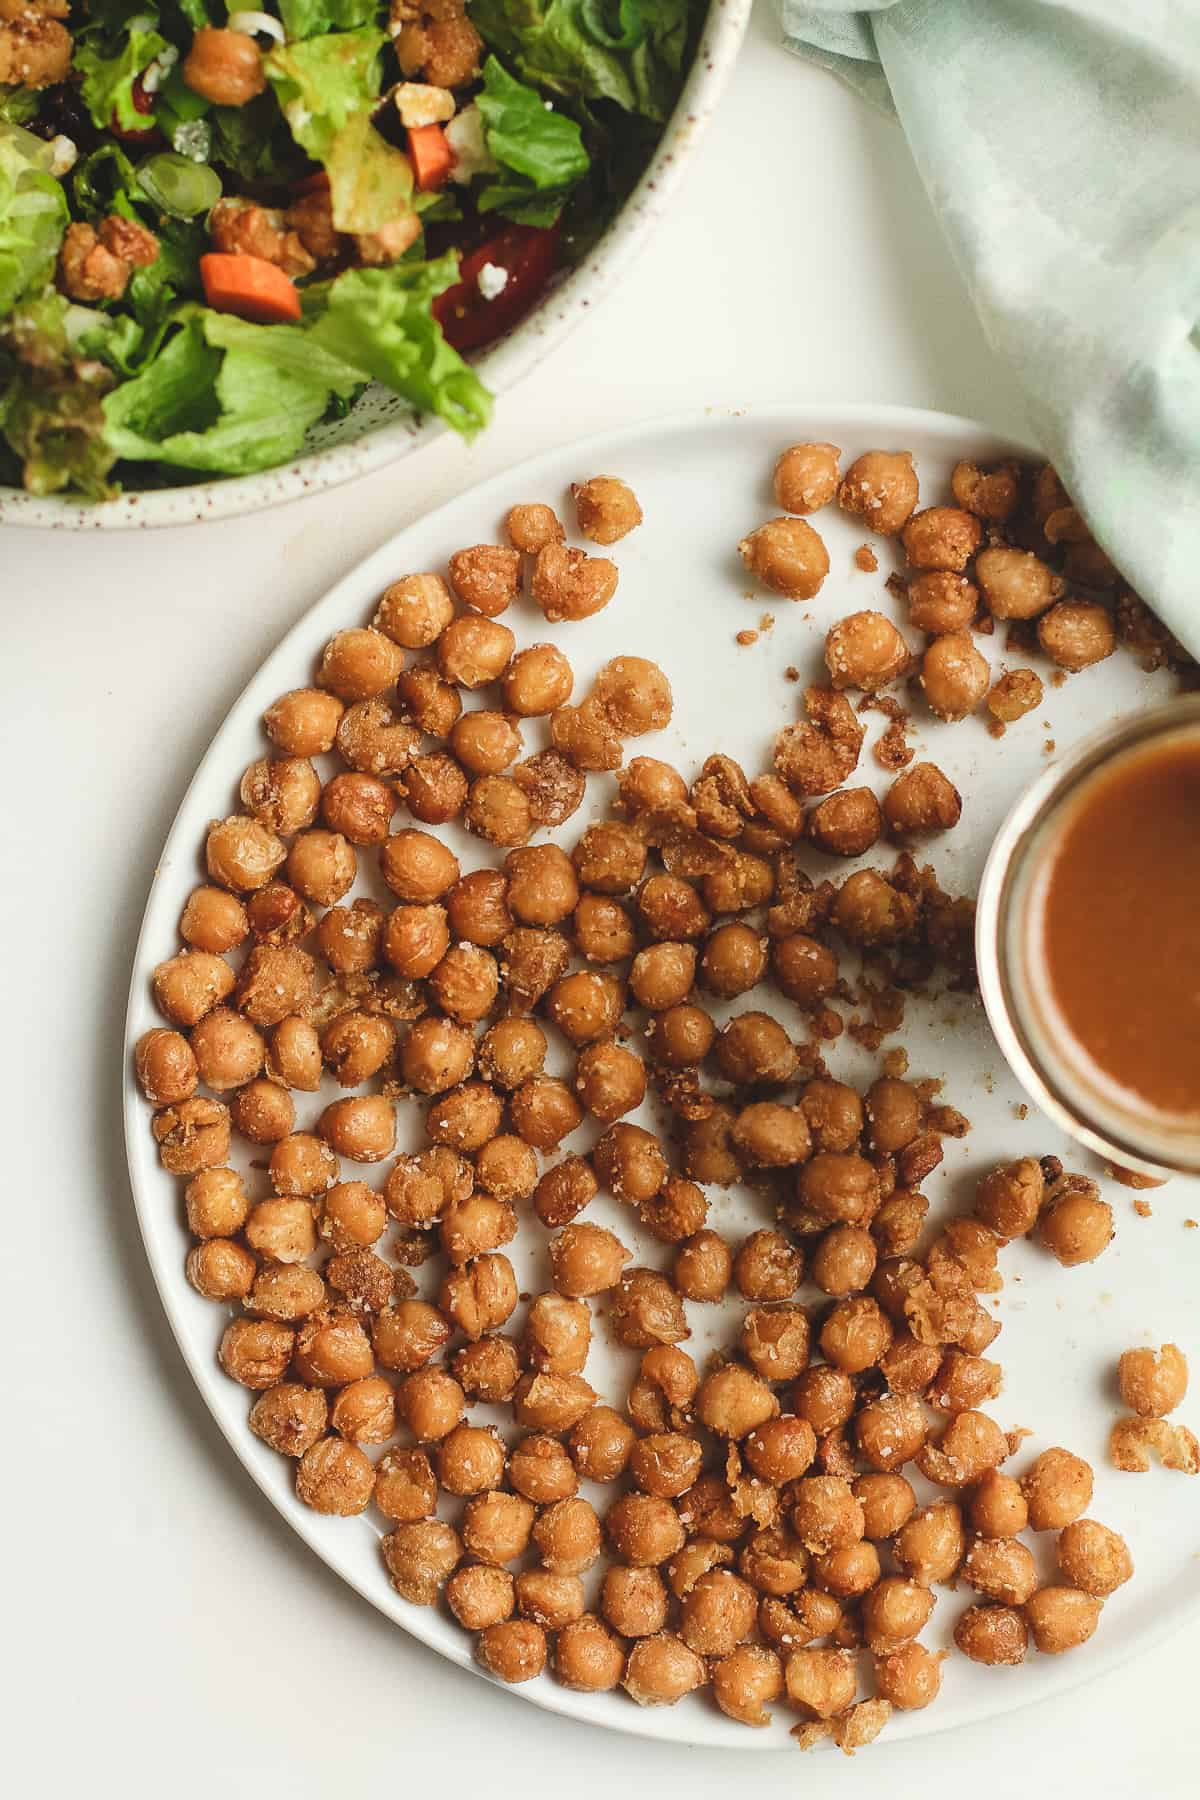 A plate of crispy chickpeas with dressing, next to a green salad.